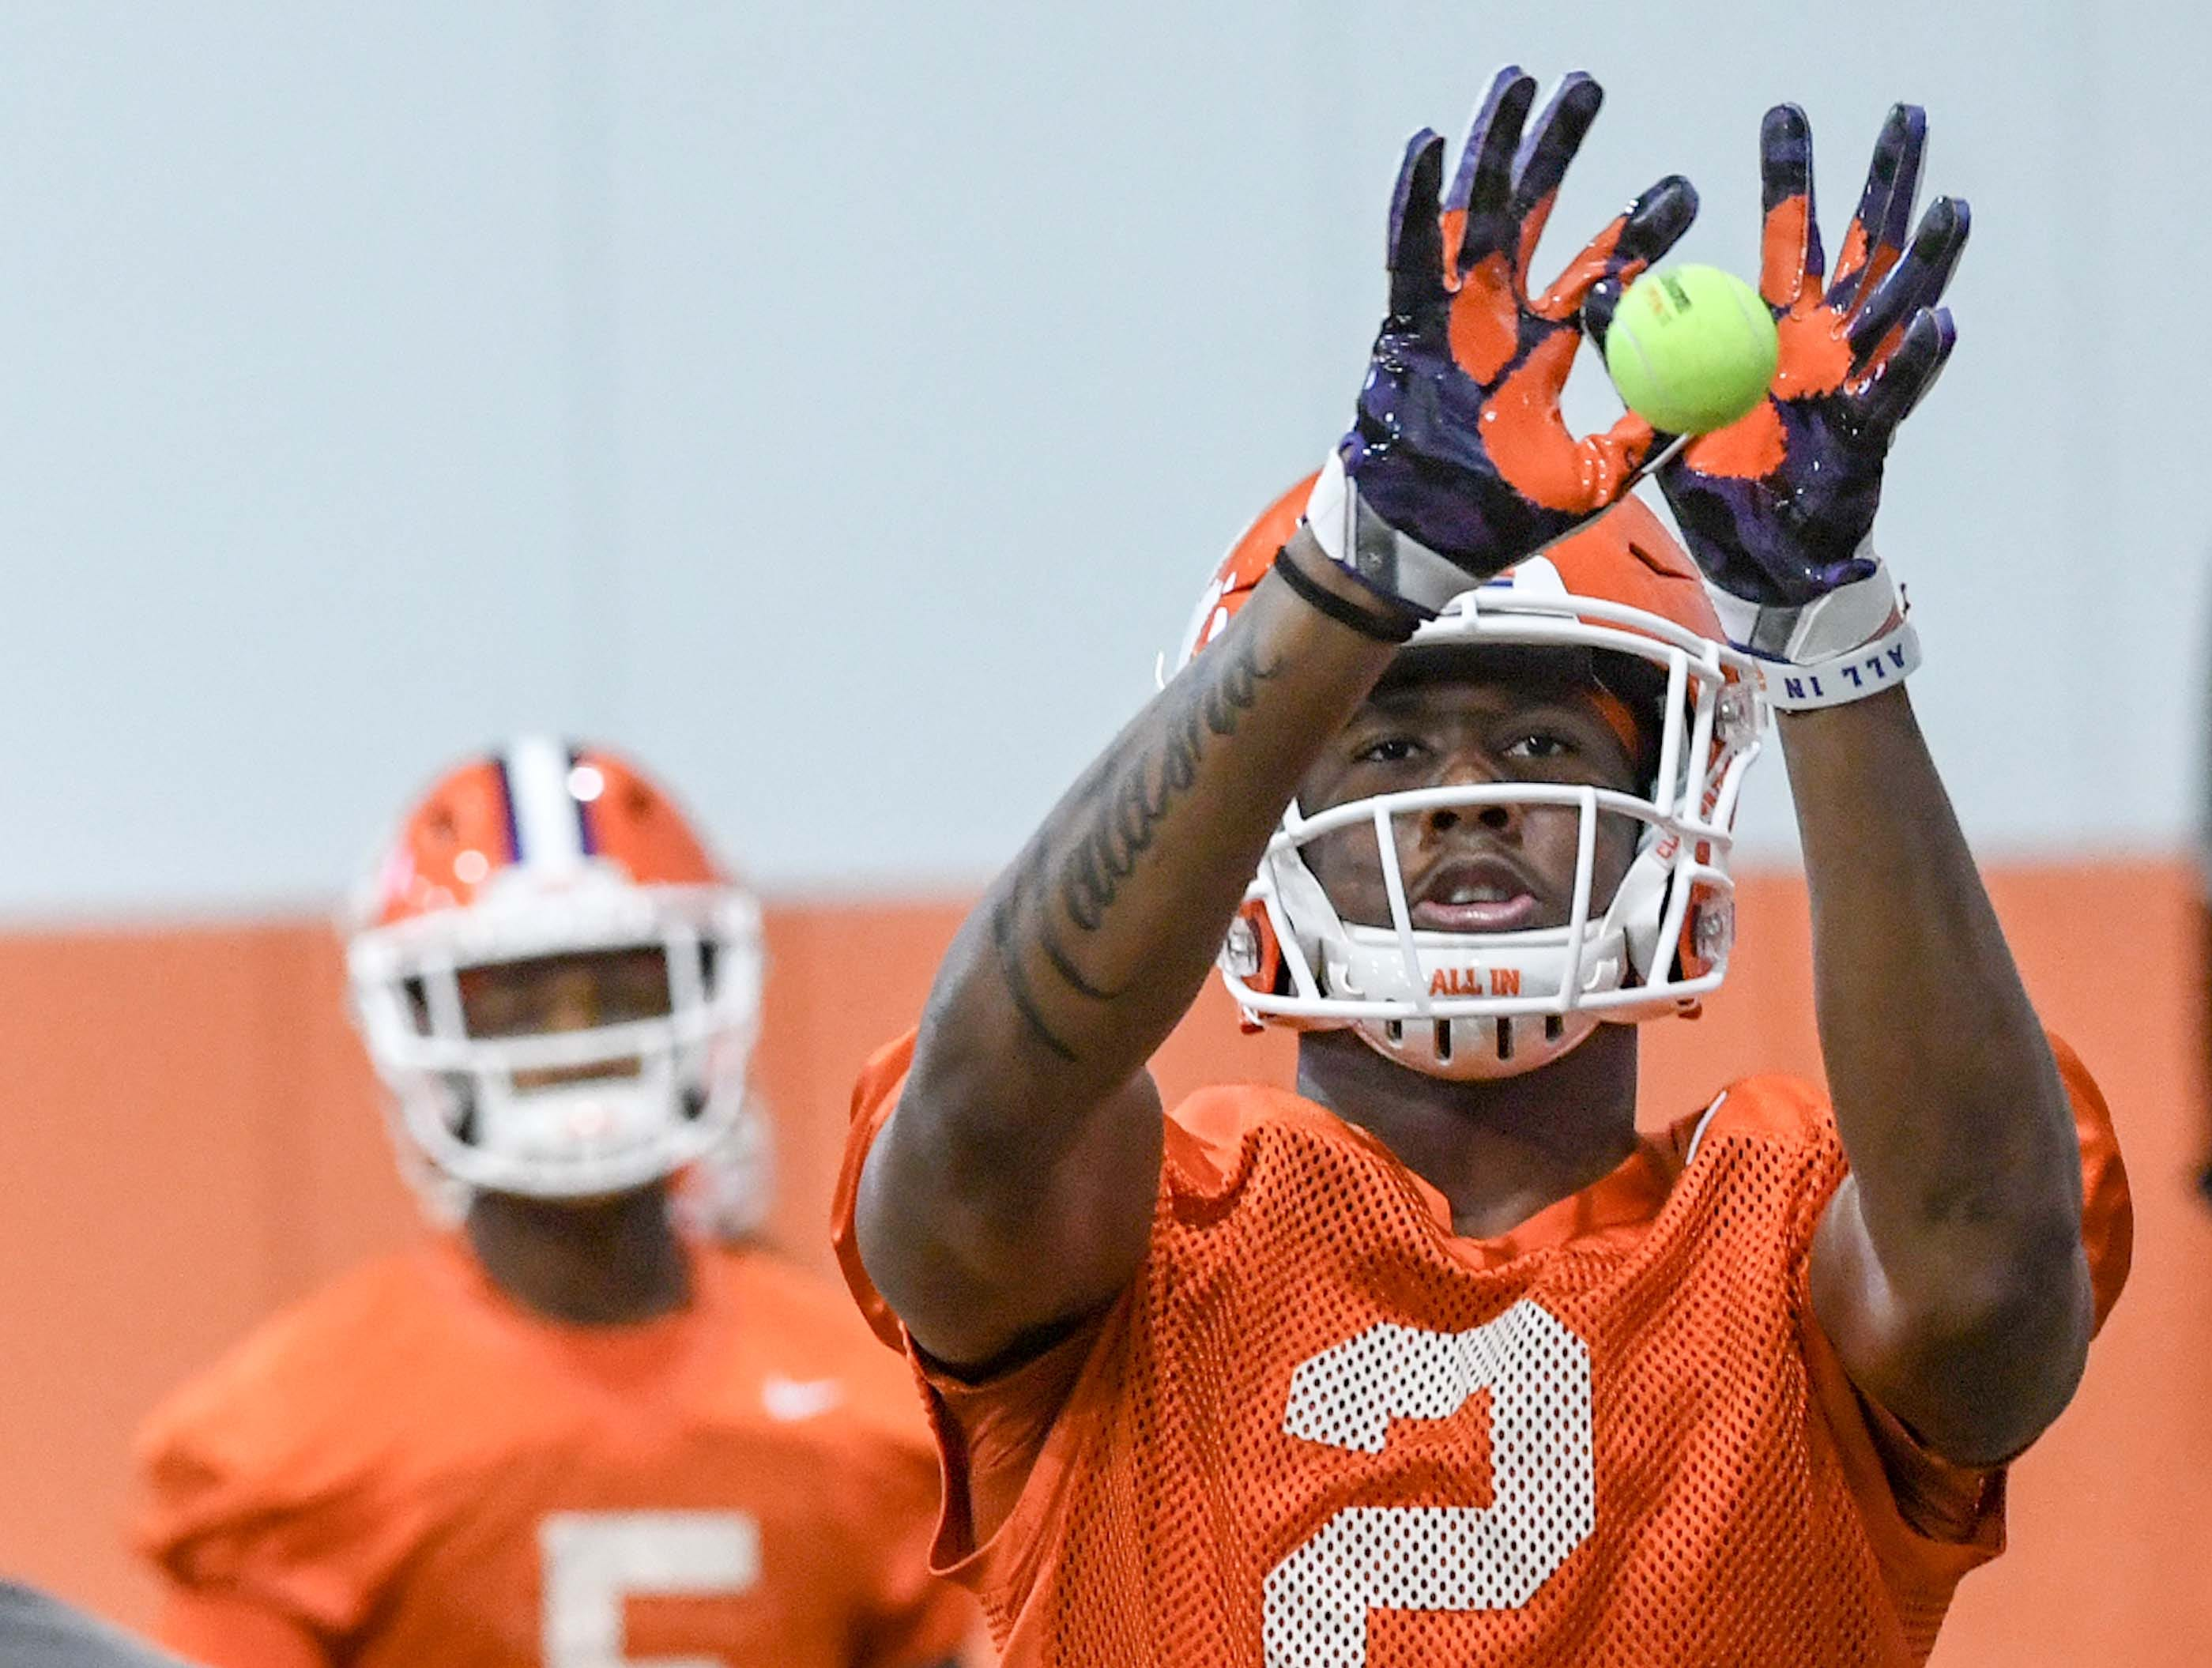 Clemson wide receiver Frank Ladson, Jr. (2) catches a tennis ball in a drill during practice at the Poe Indoor Facility in Clemson Friday.